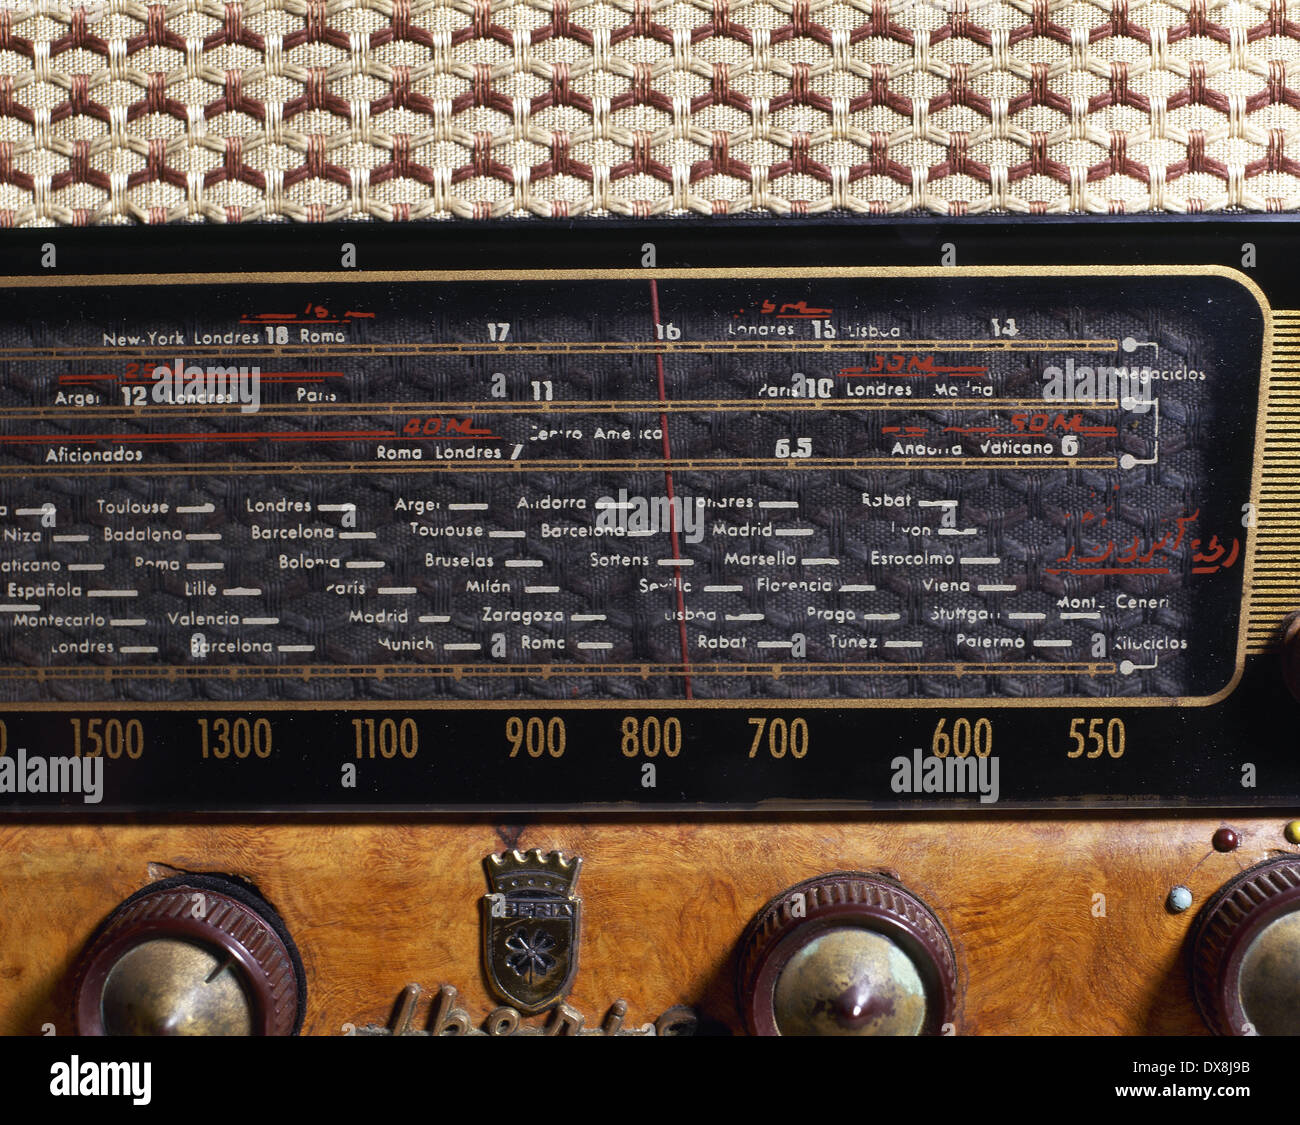 Ancient radio receiver. Brand Iberia. Dial's detail. - Stock Image